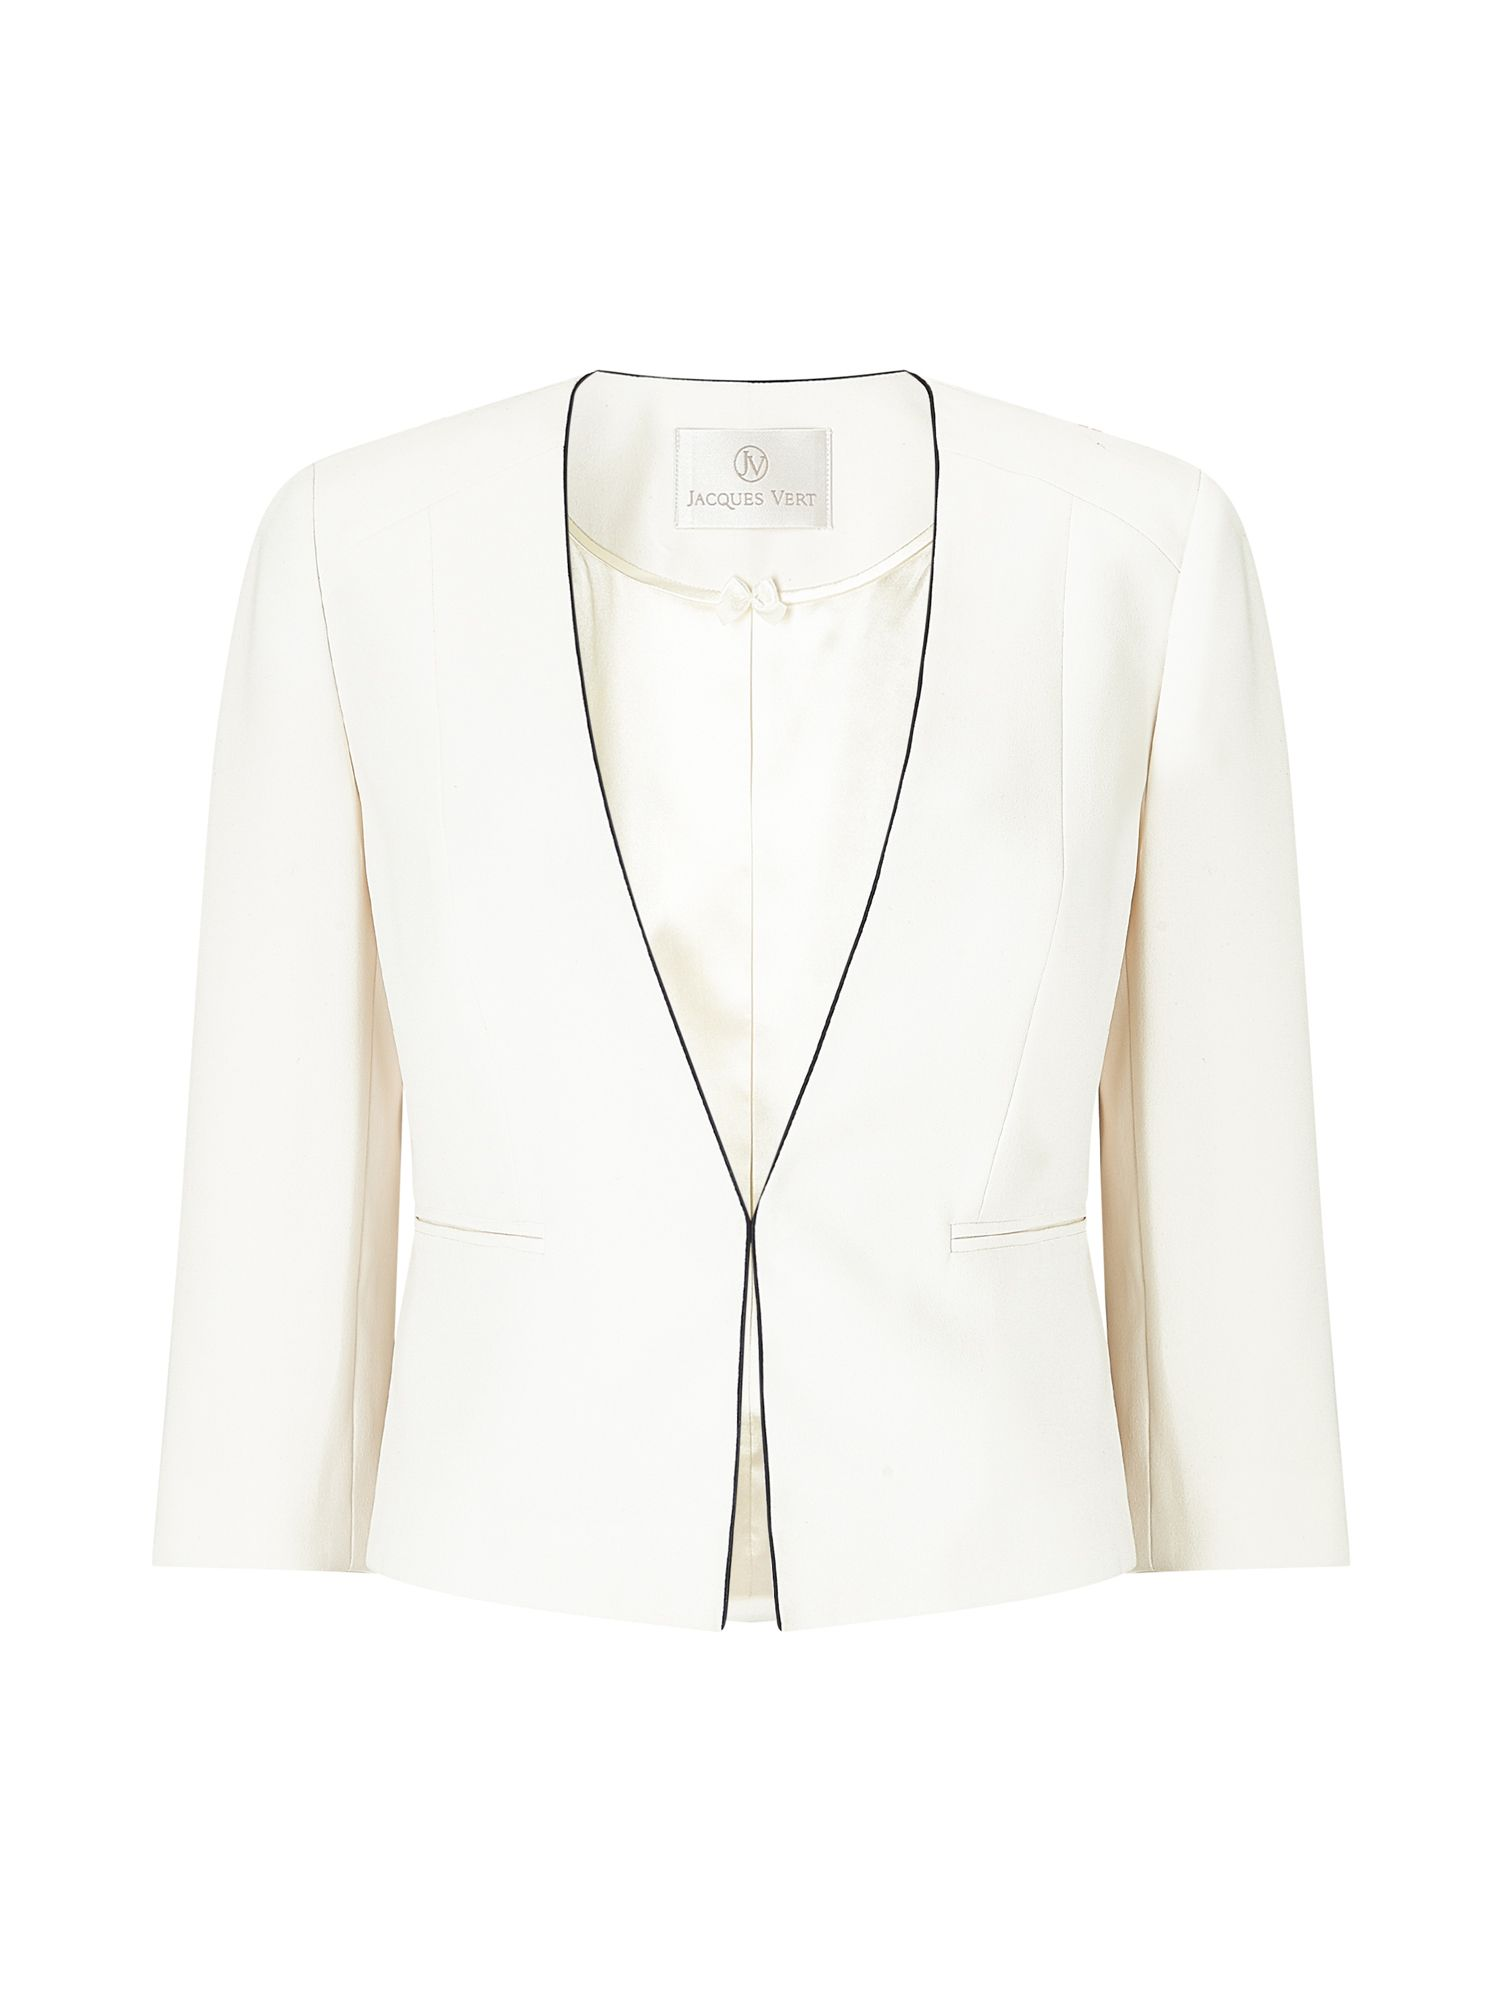 Jacques Vert Crepe Piped Jacket, Neutral